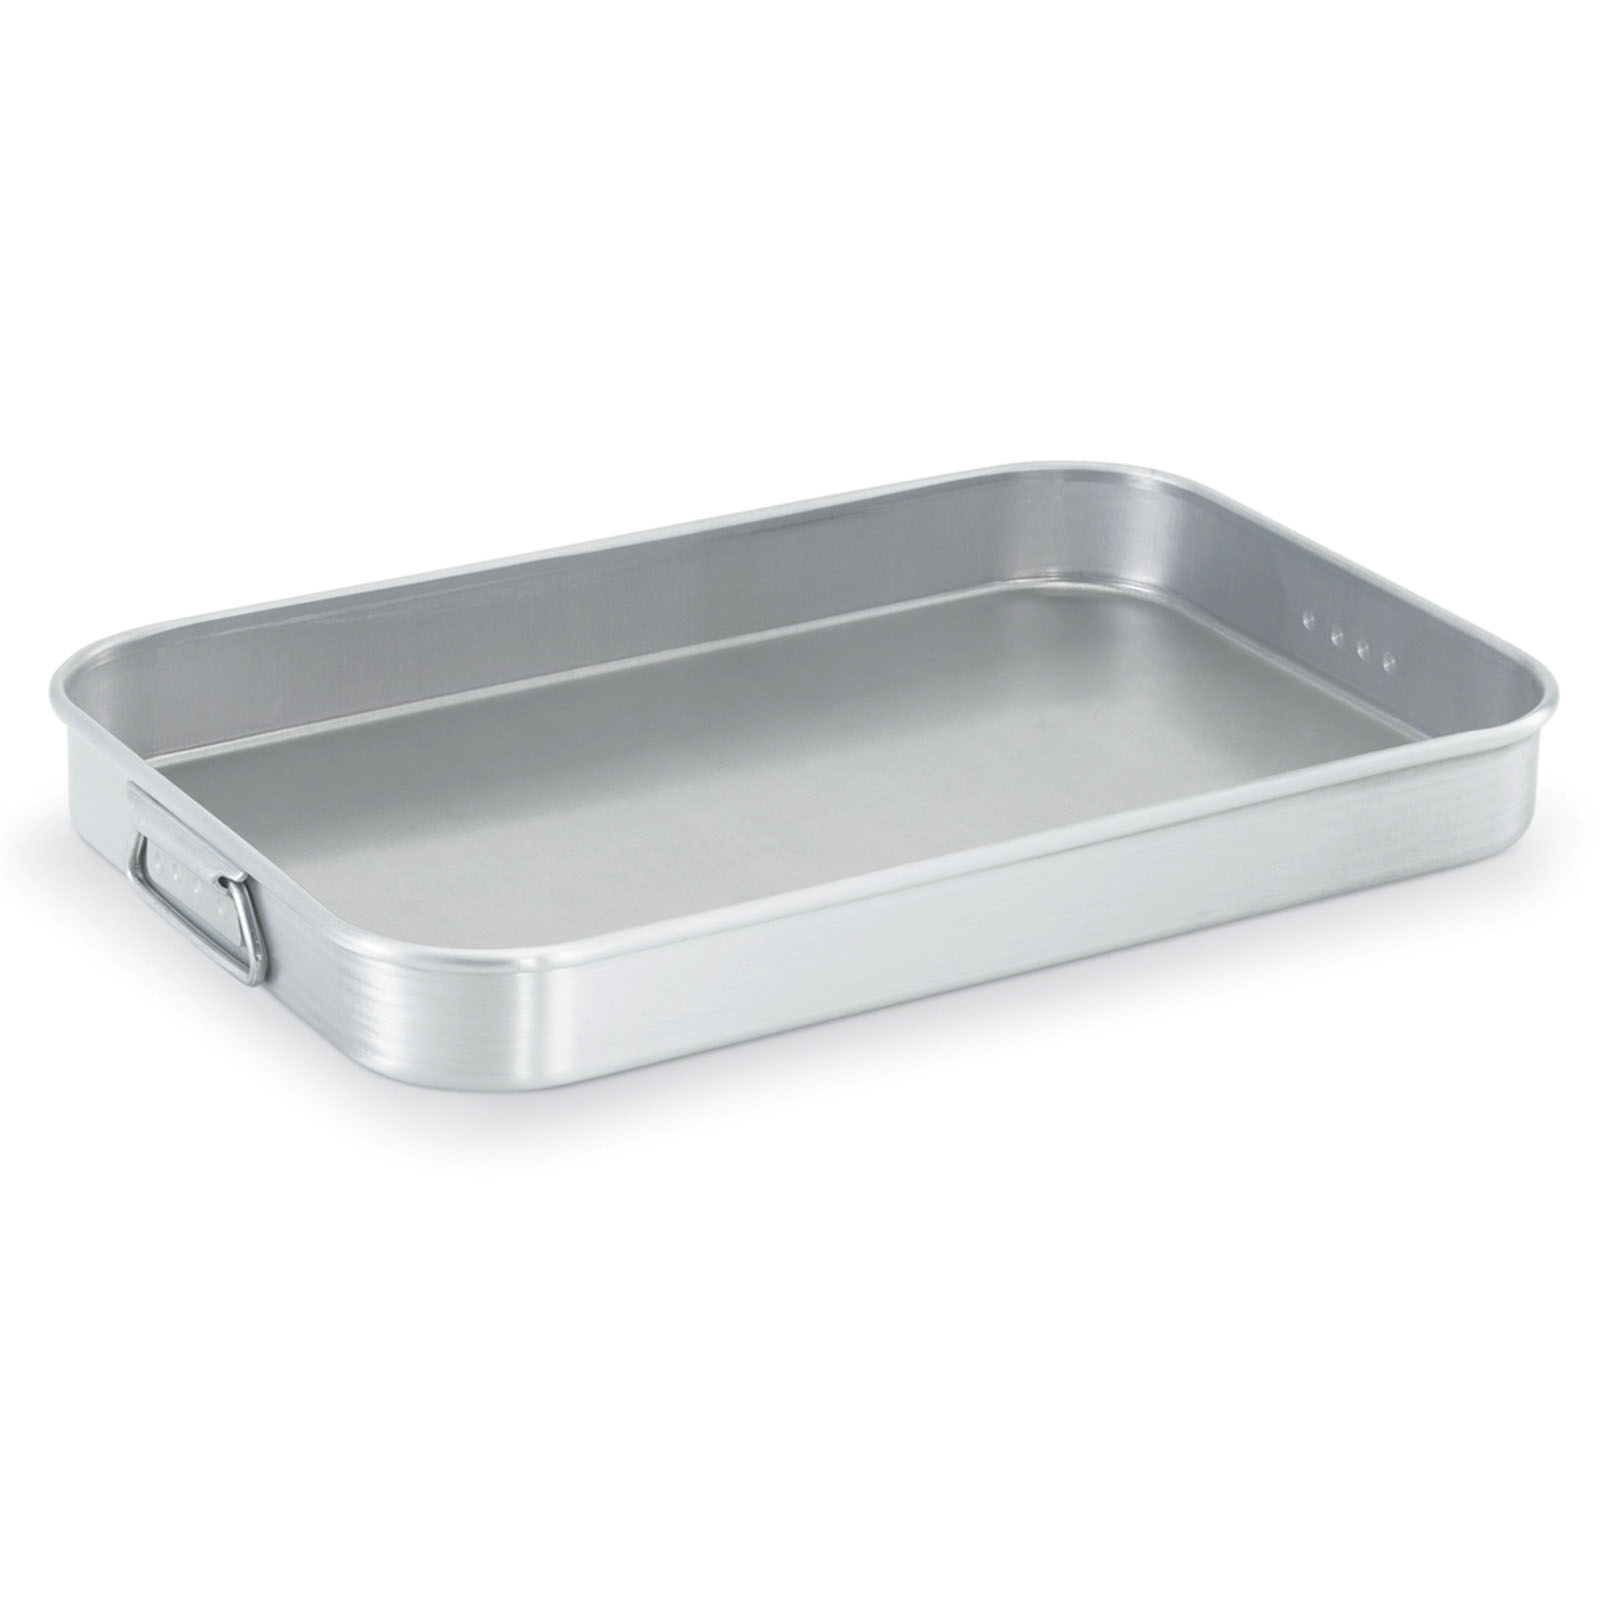 Vollrath 68369 roasting pan